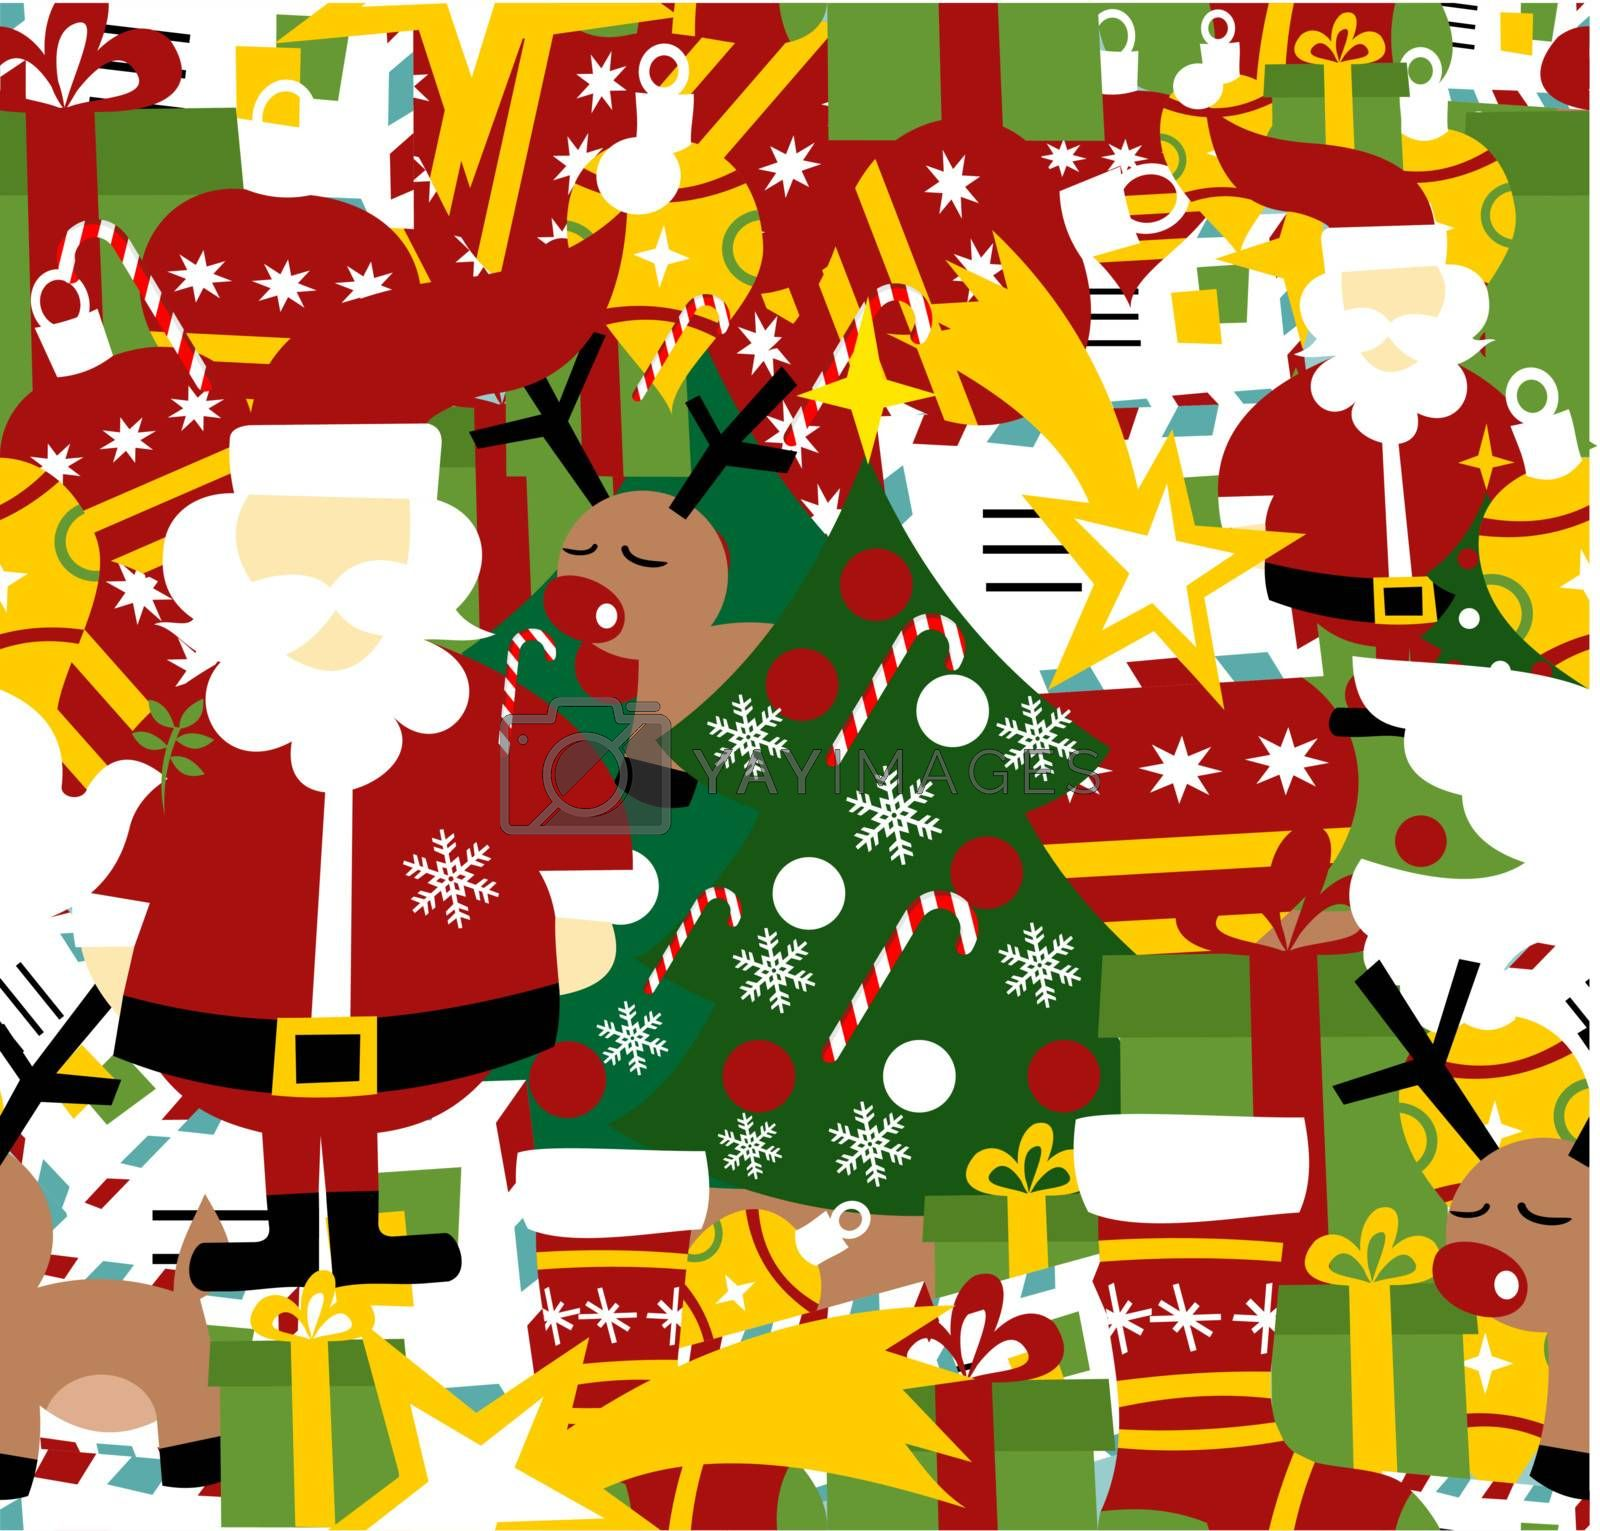 Christmas decorative elements seamless pattern background. Vector illustration layered.